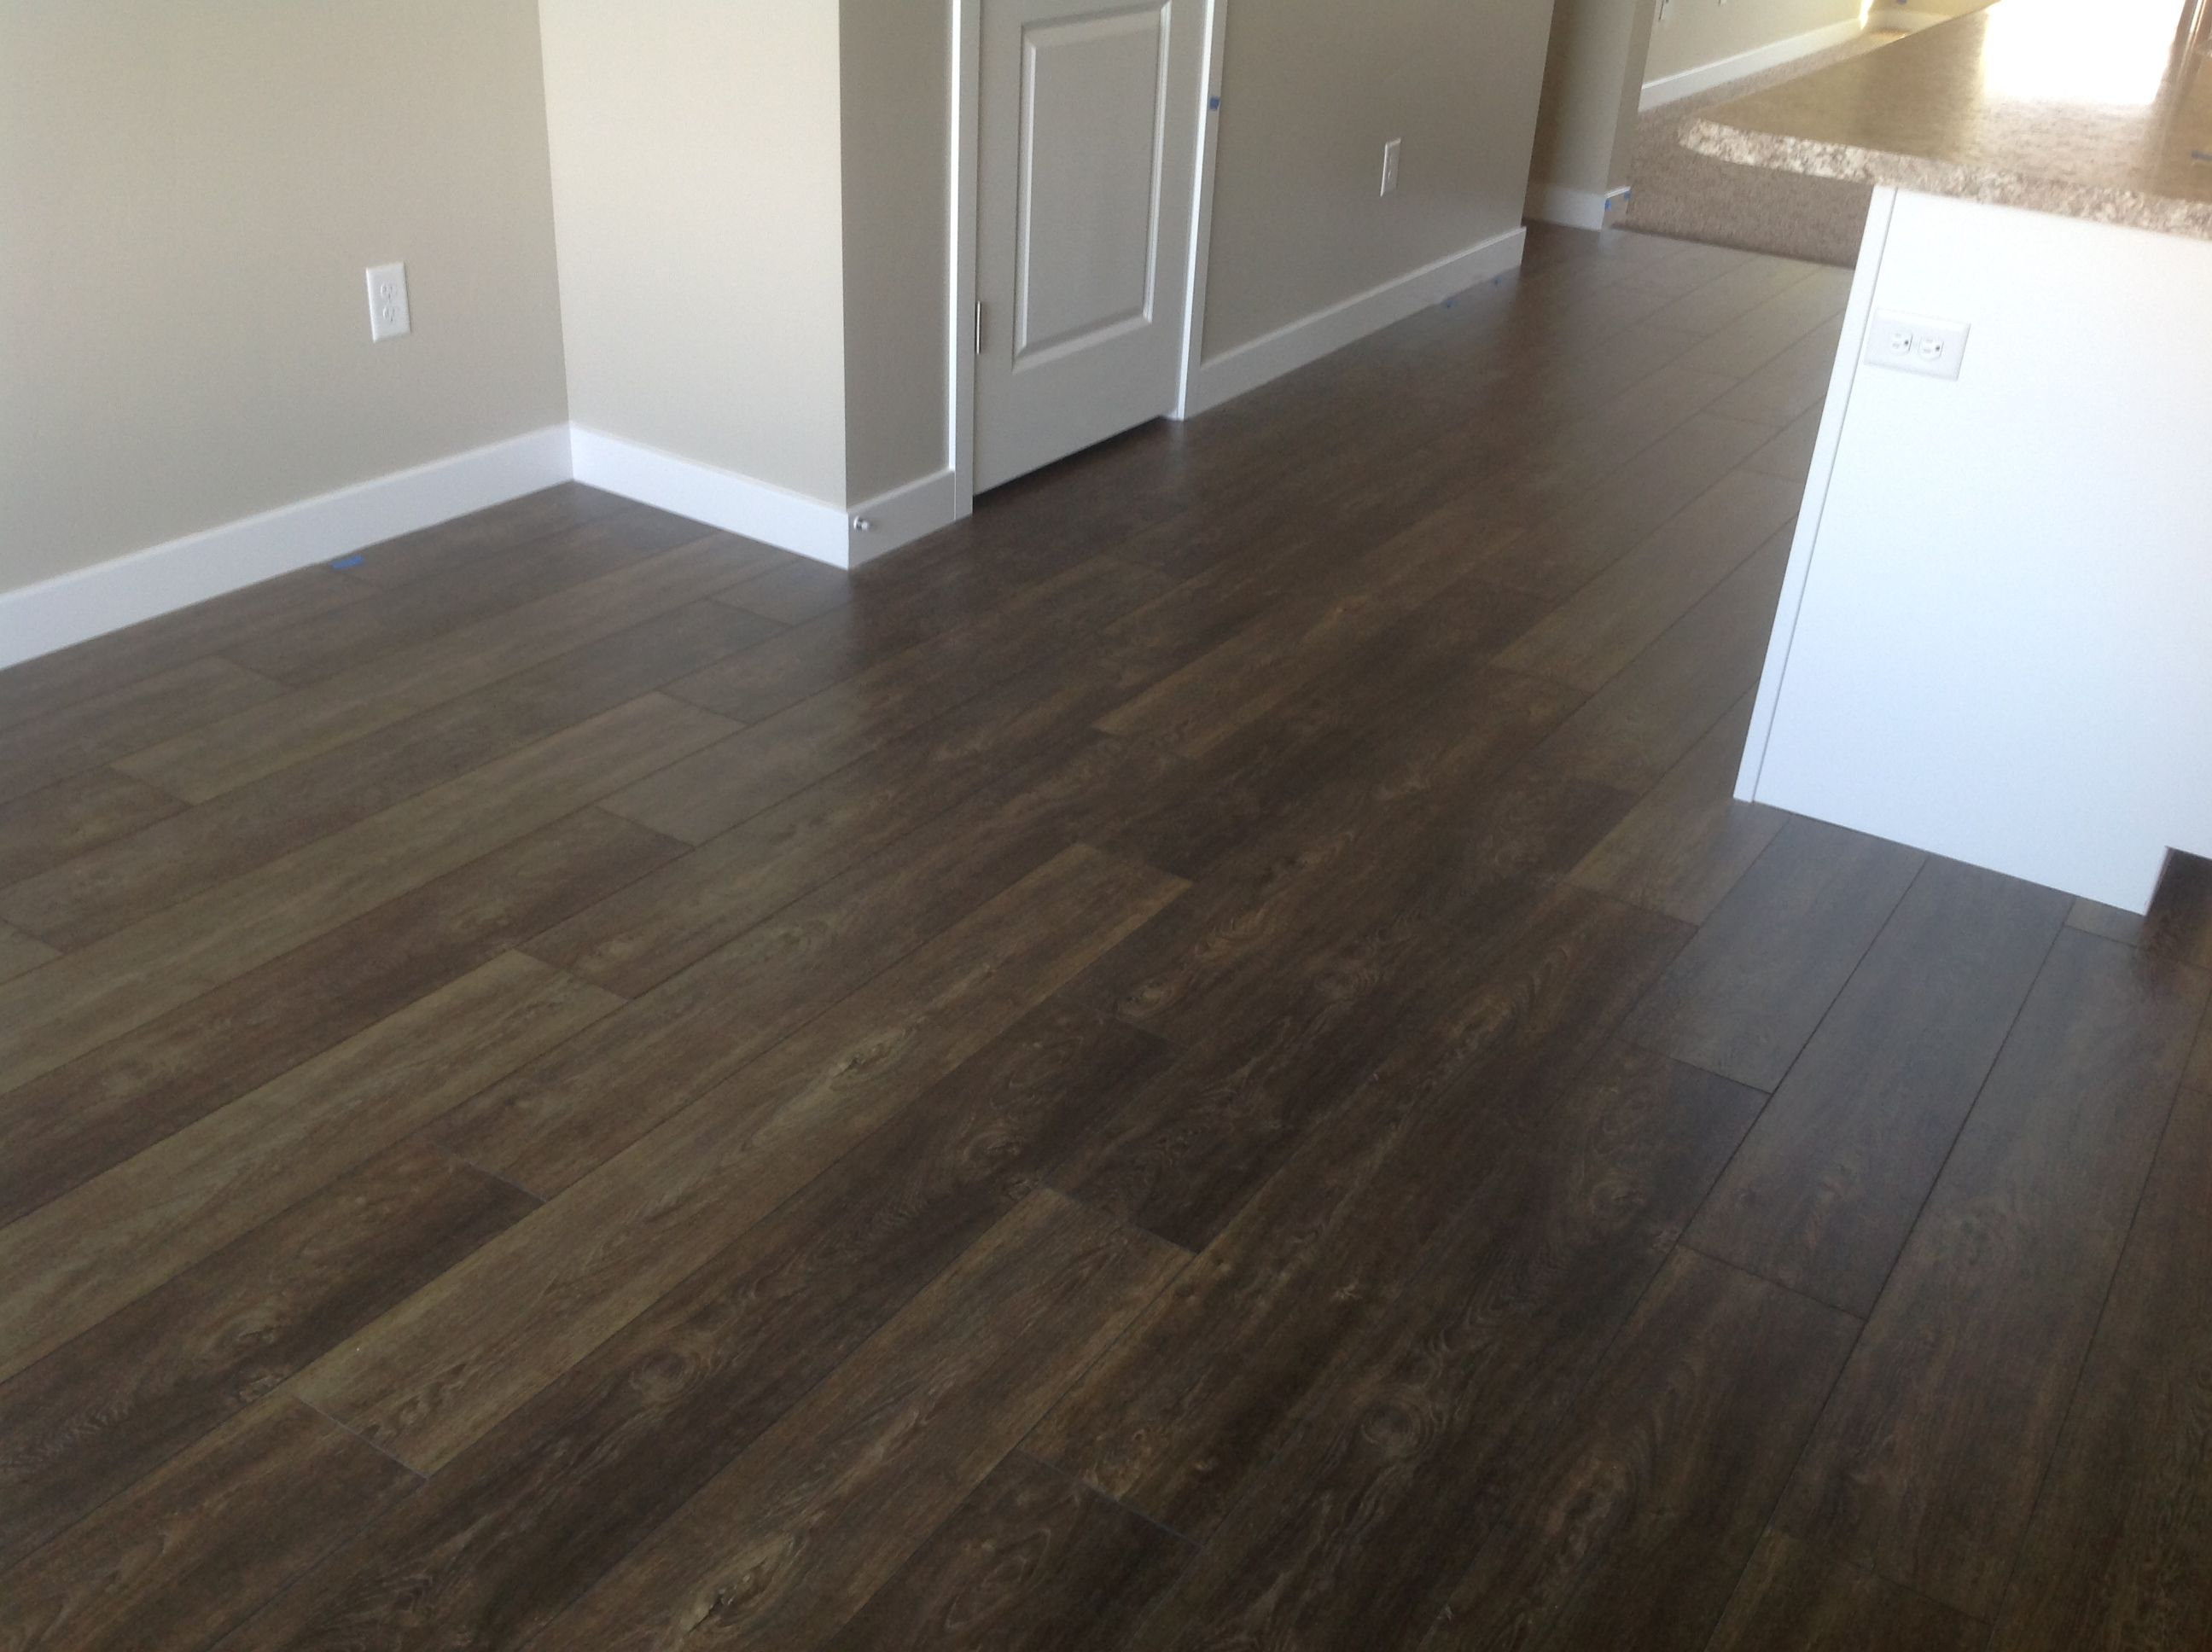 French Oak From The Mannington Restoration S Collection Is Quickly Becoming A Favorite With Home Builders French Oaklaminate Flooringwood